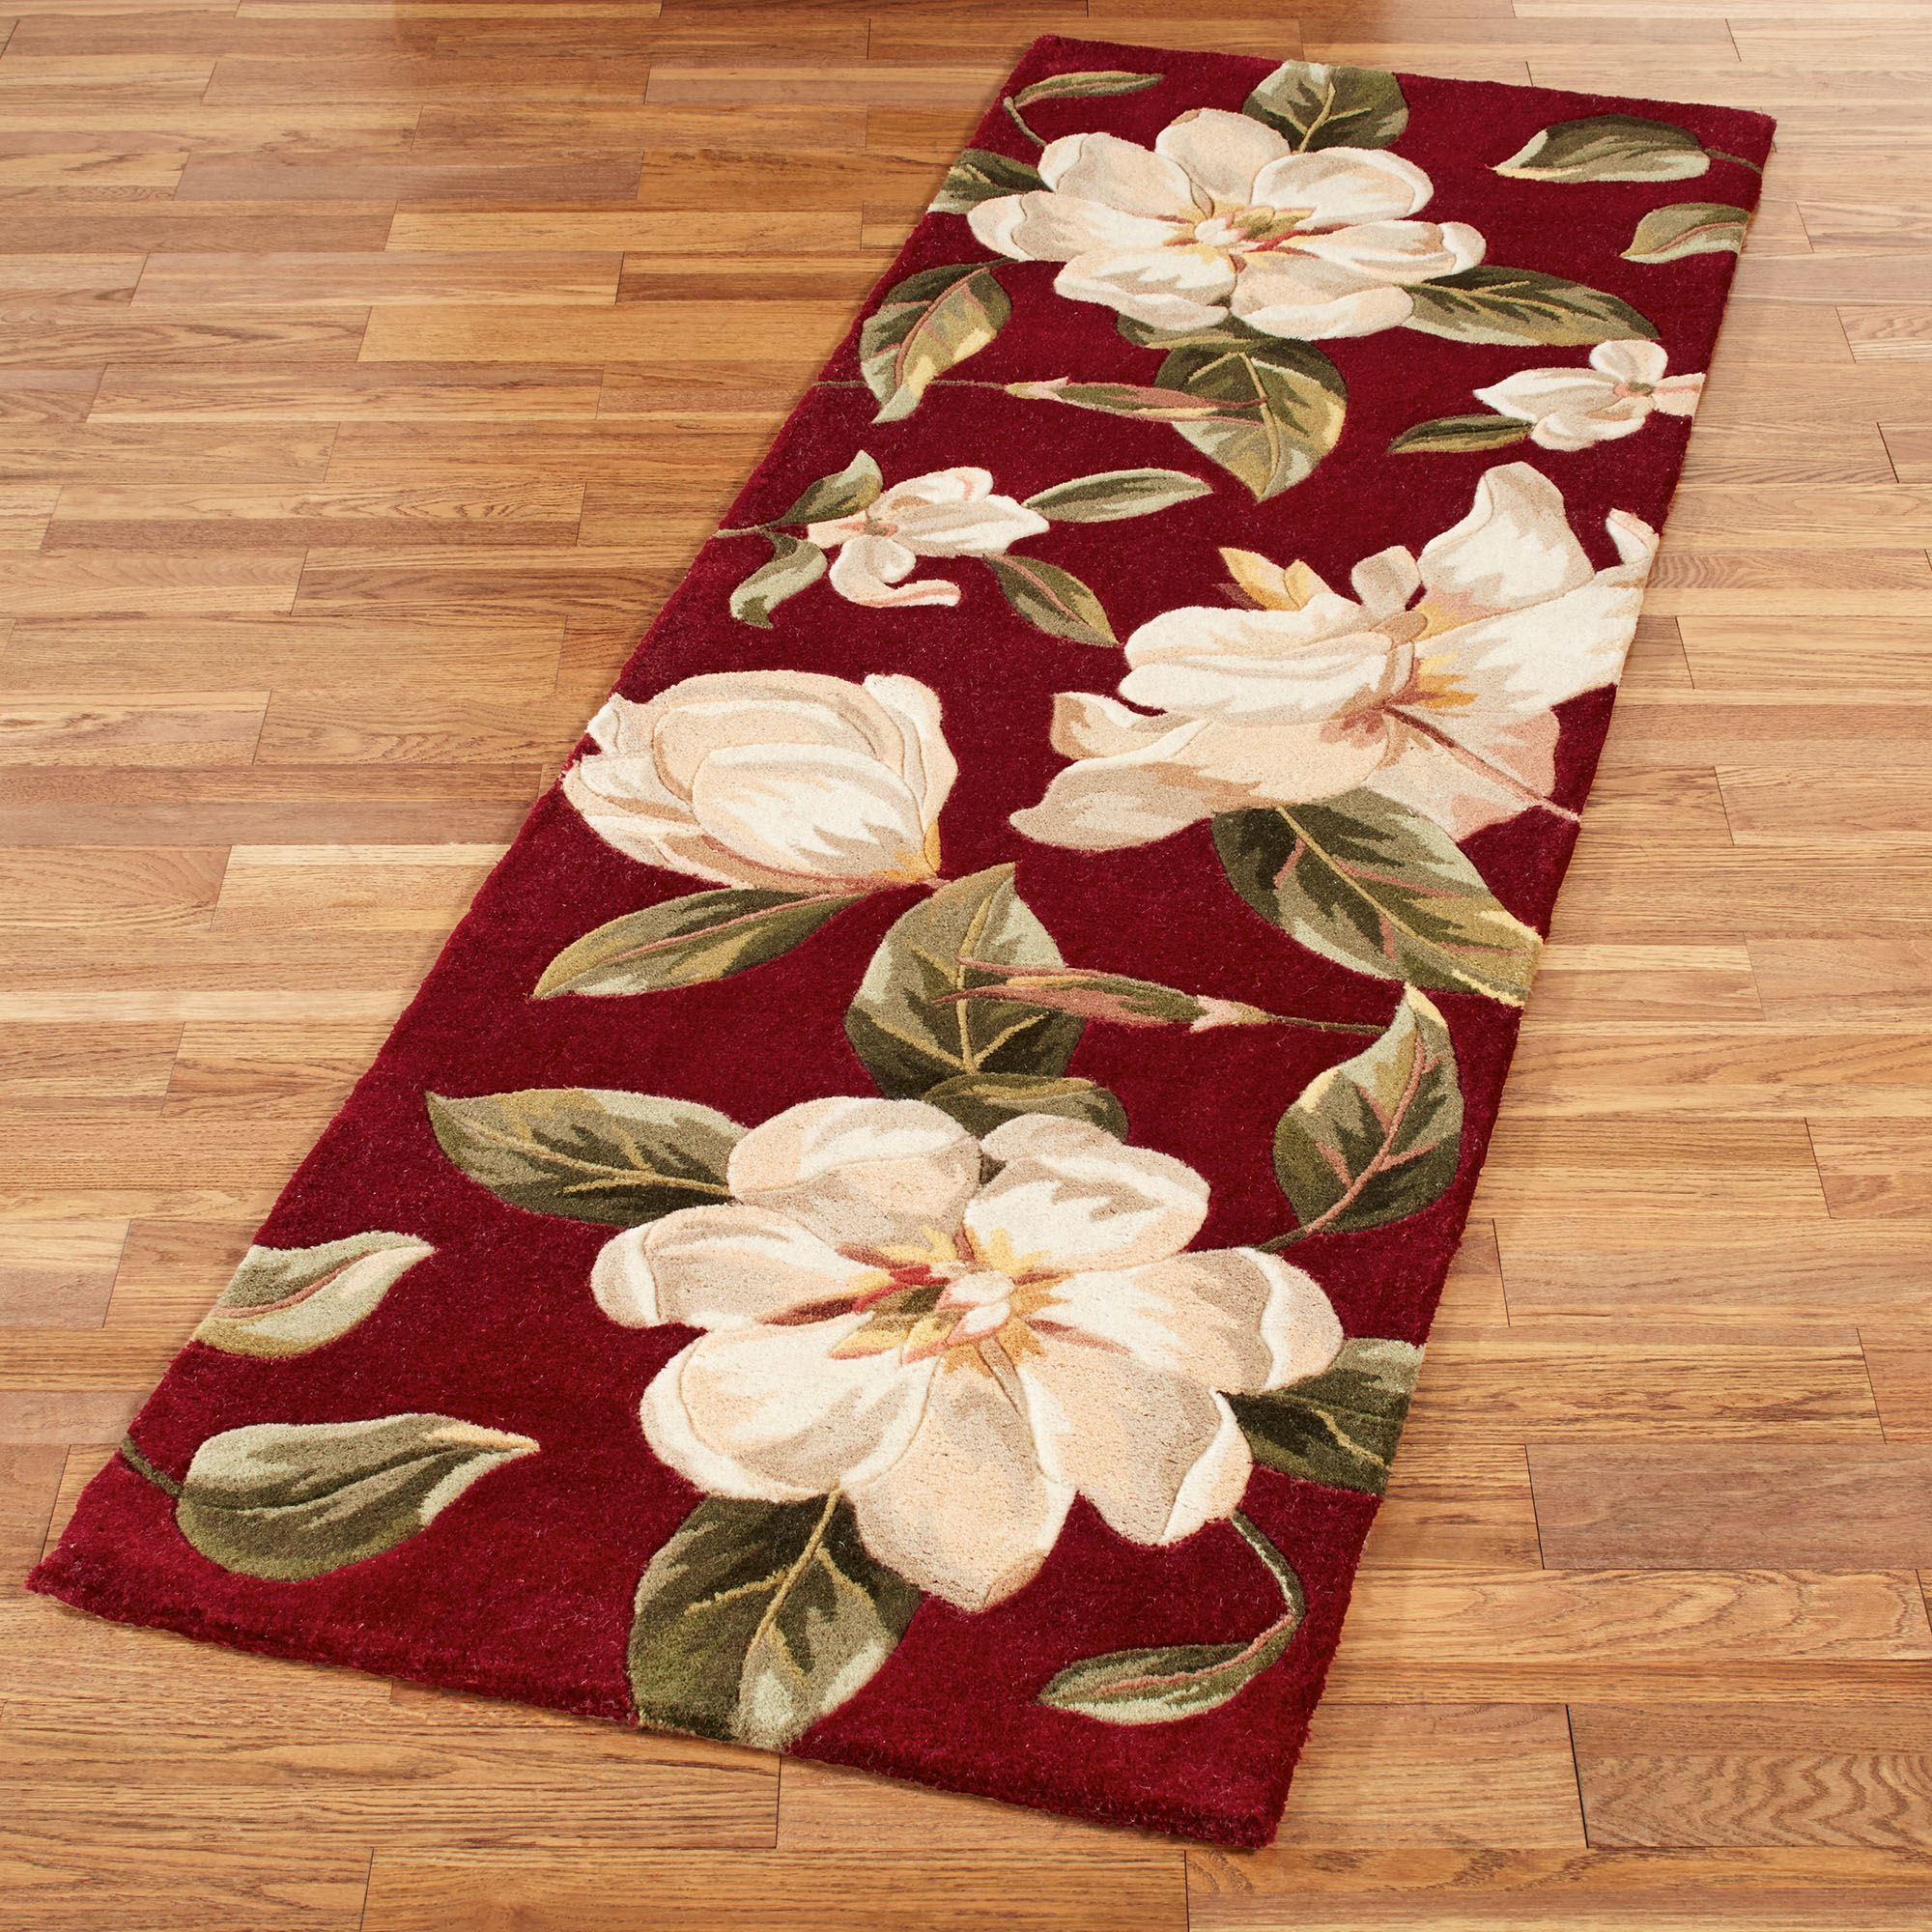 magnolia those of throw gaines that rug pillows all collection this the pin area home part by joanna blanket rugs